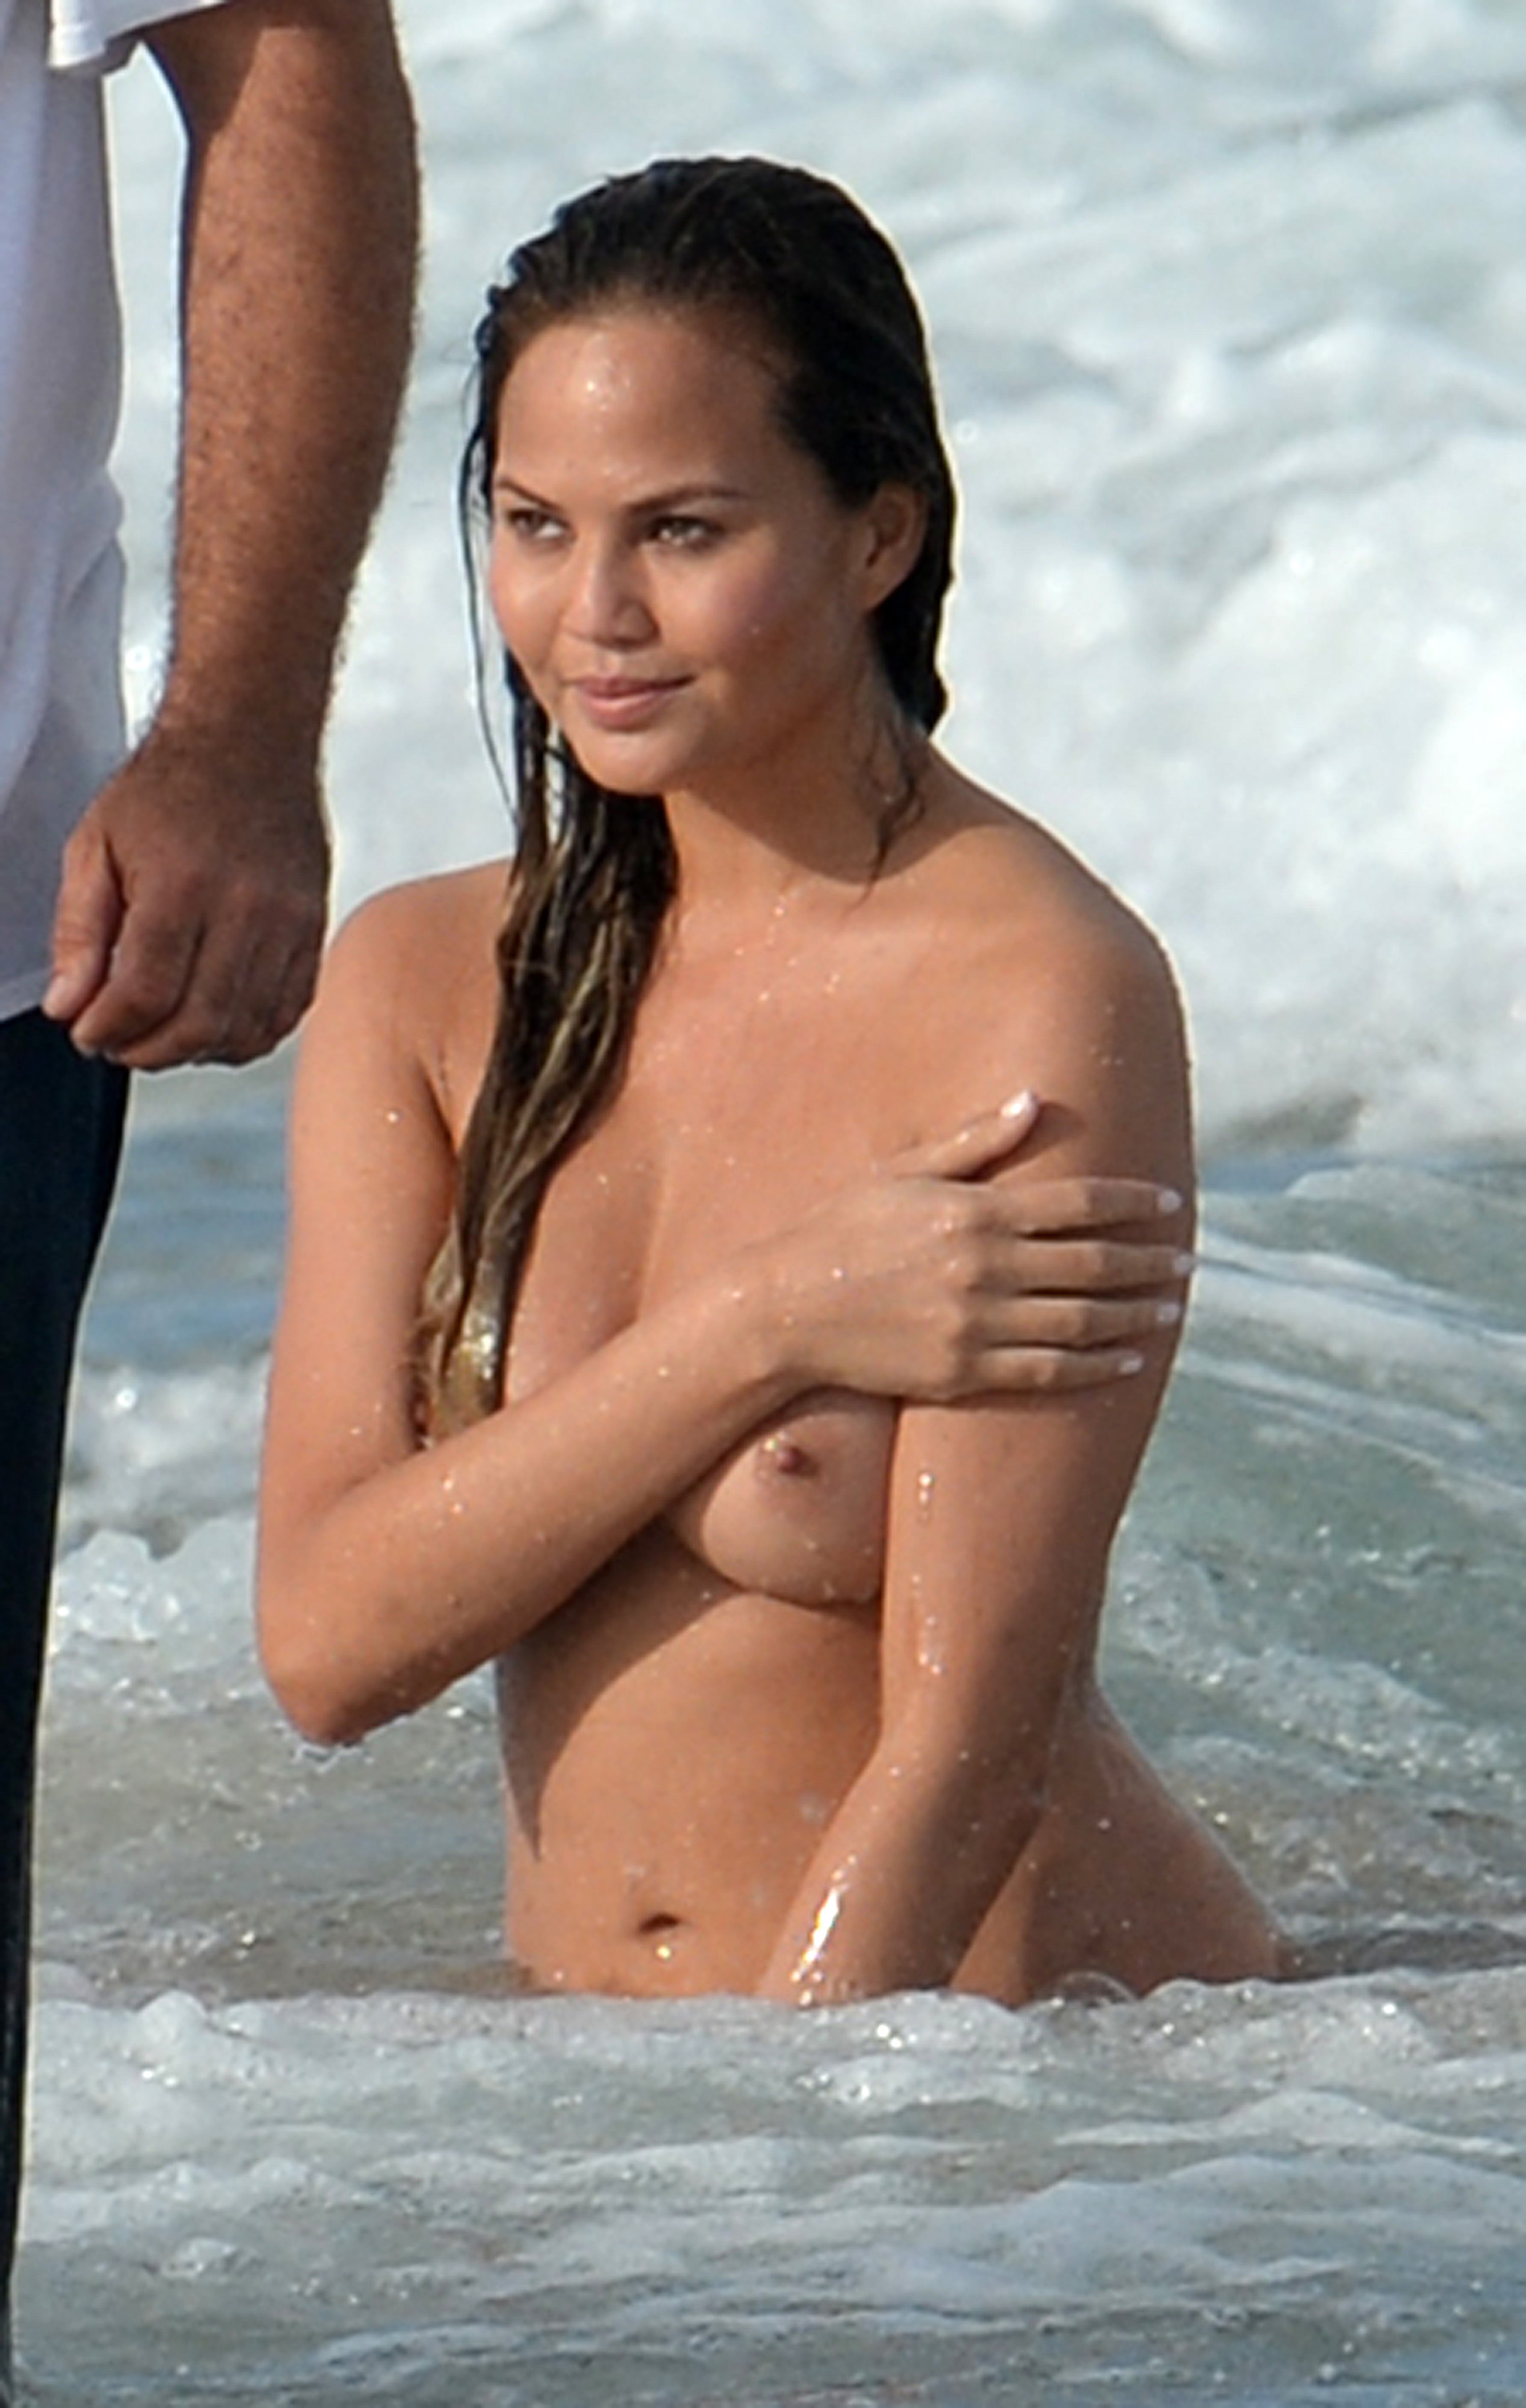 Chrissy Teigen Topless Photoshoot At Miami Beach -3262